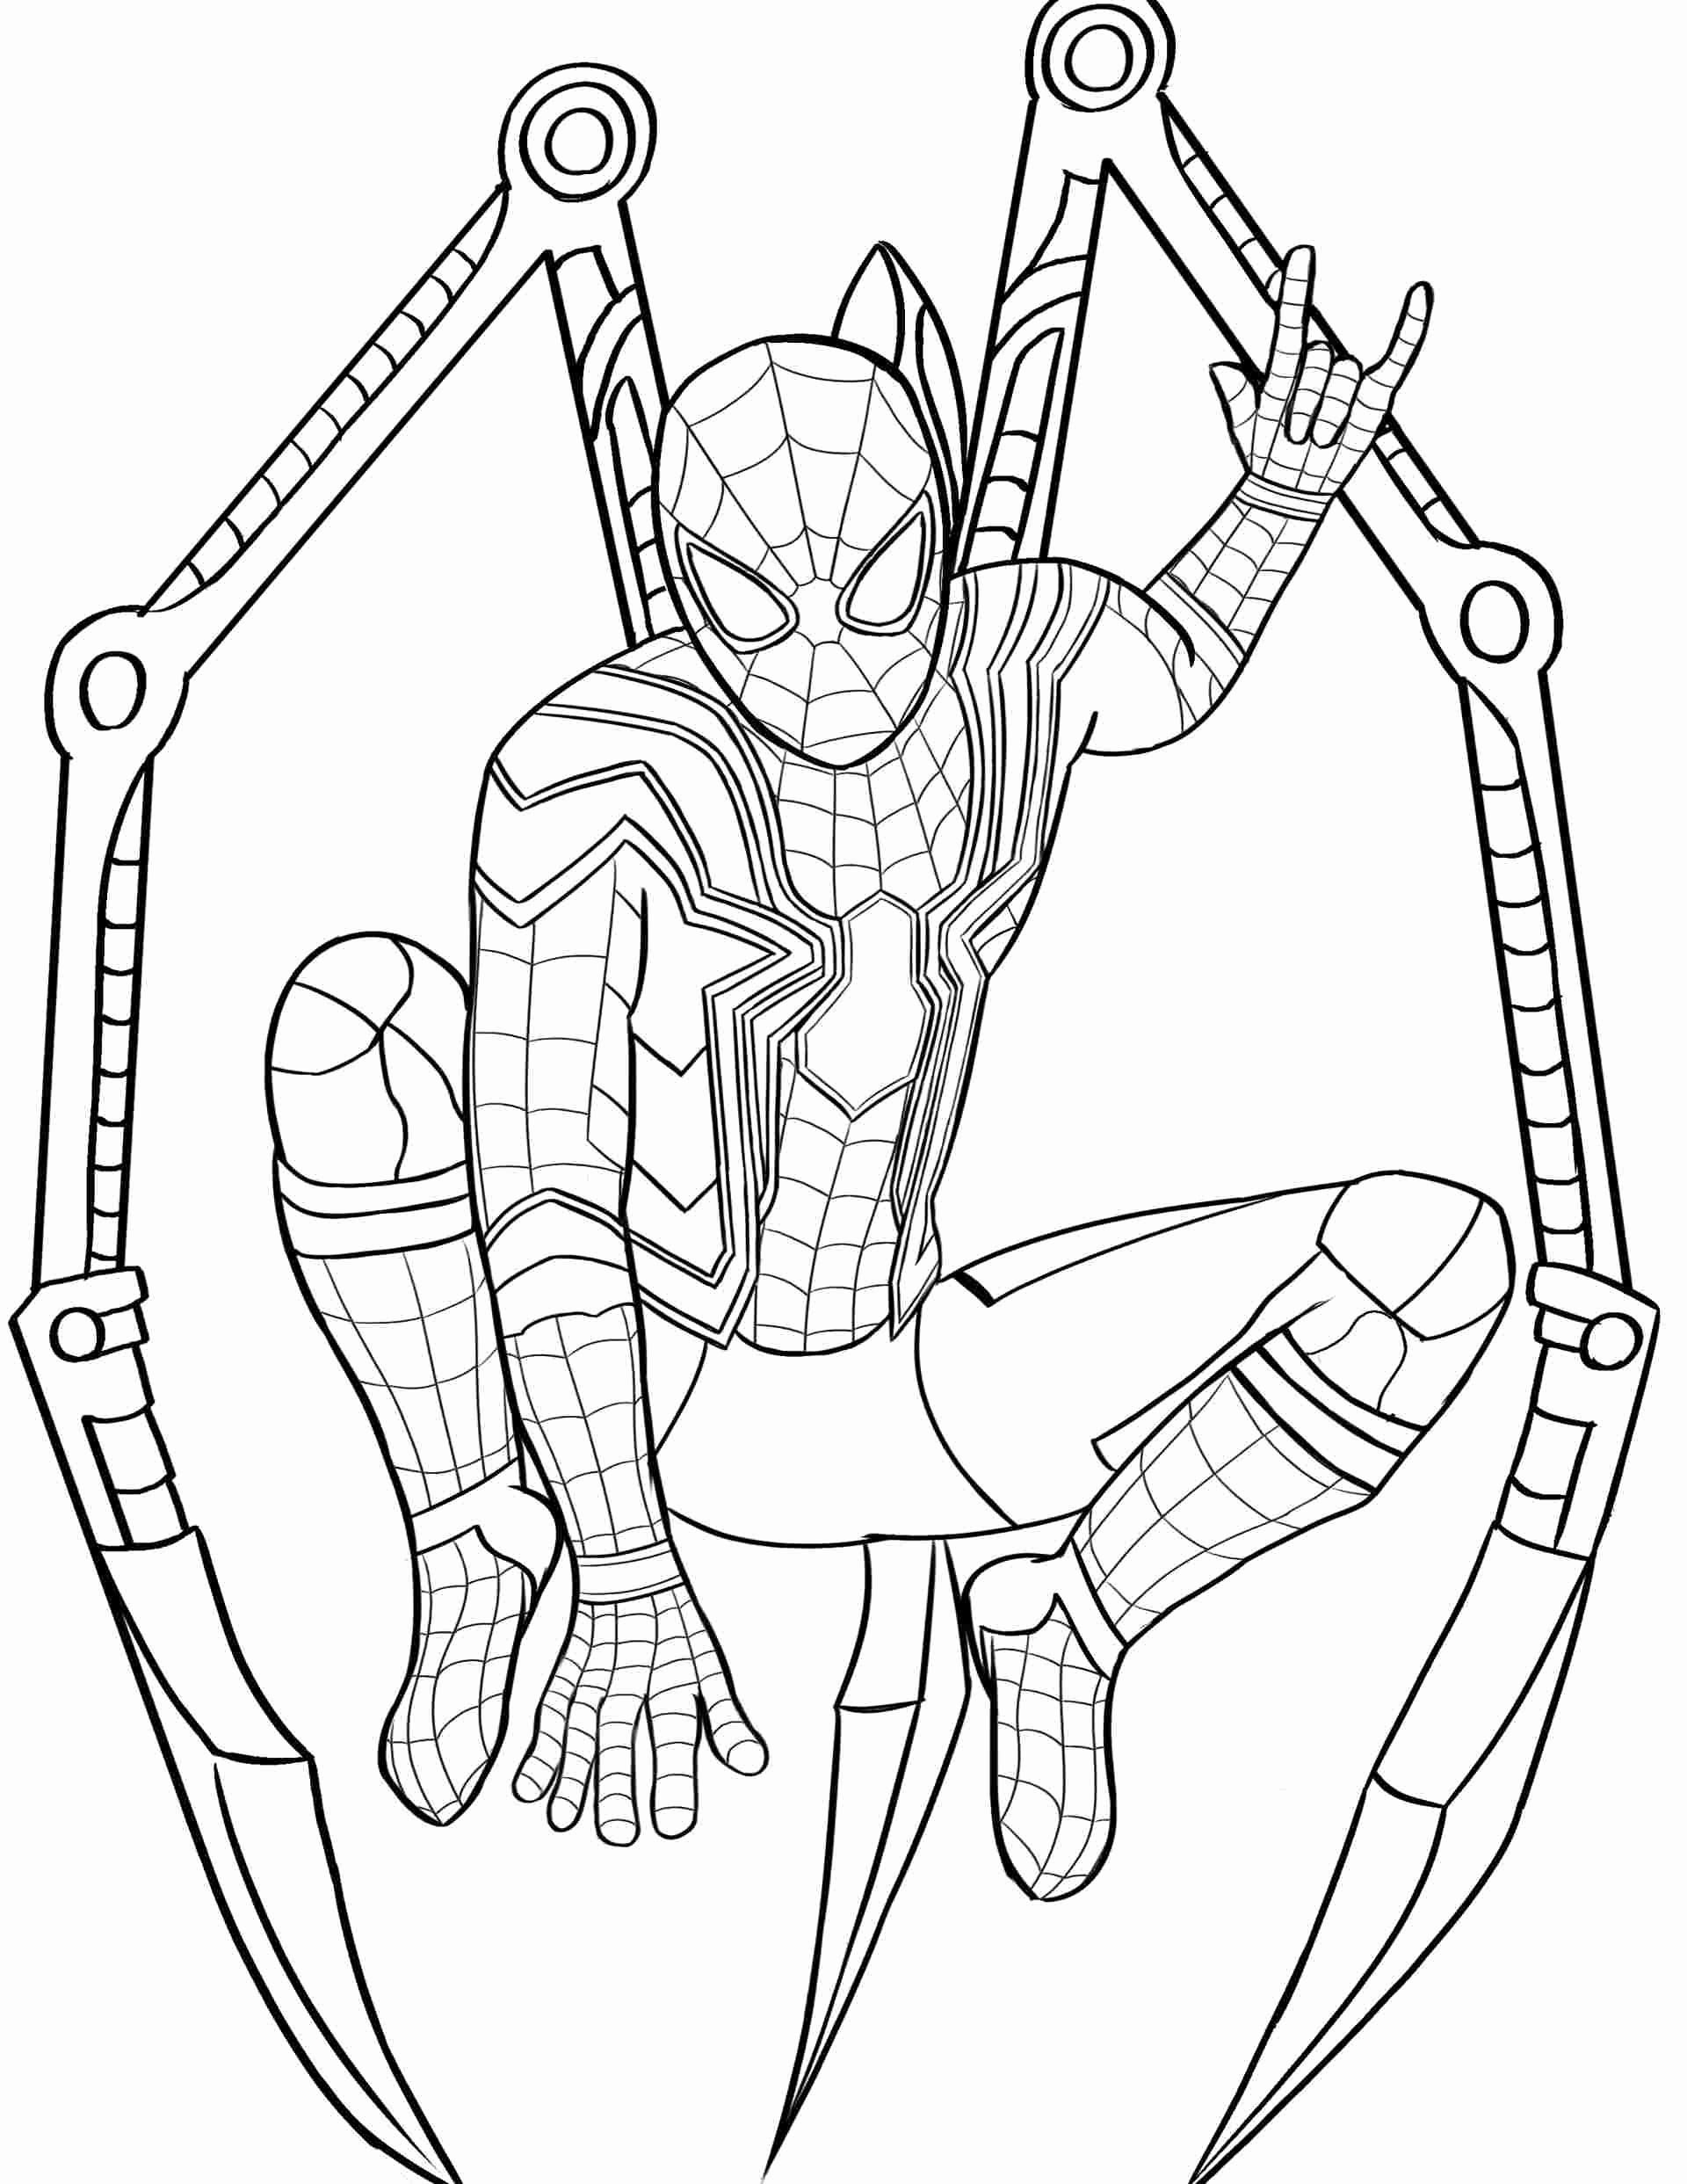 miles morales spiderman coloring page spider man miles morales coloring pages printable coloring spiderman page miles morales